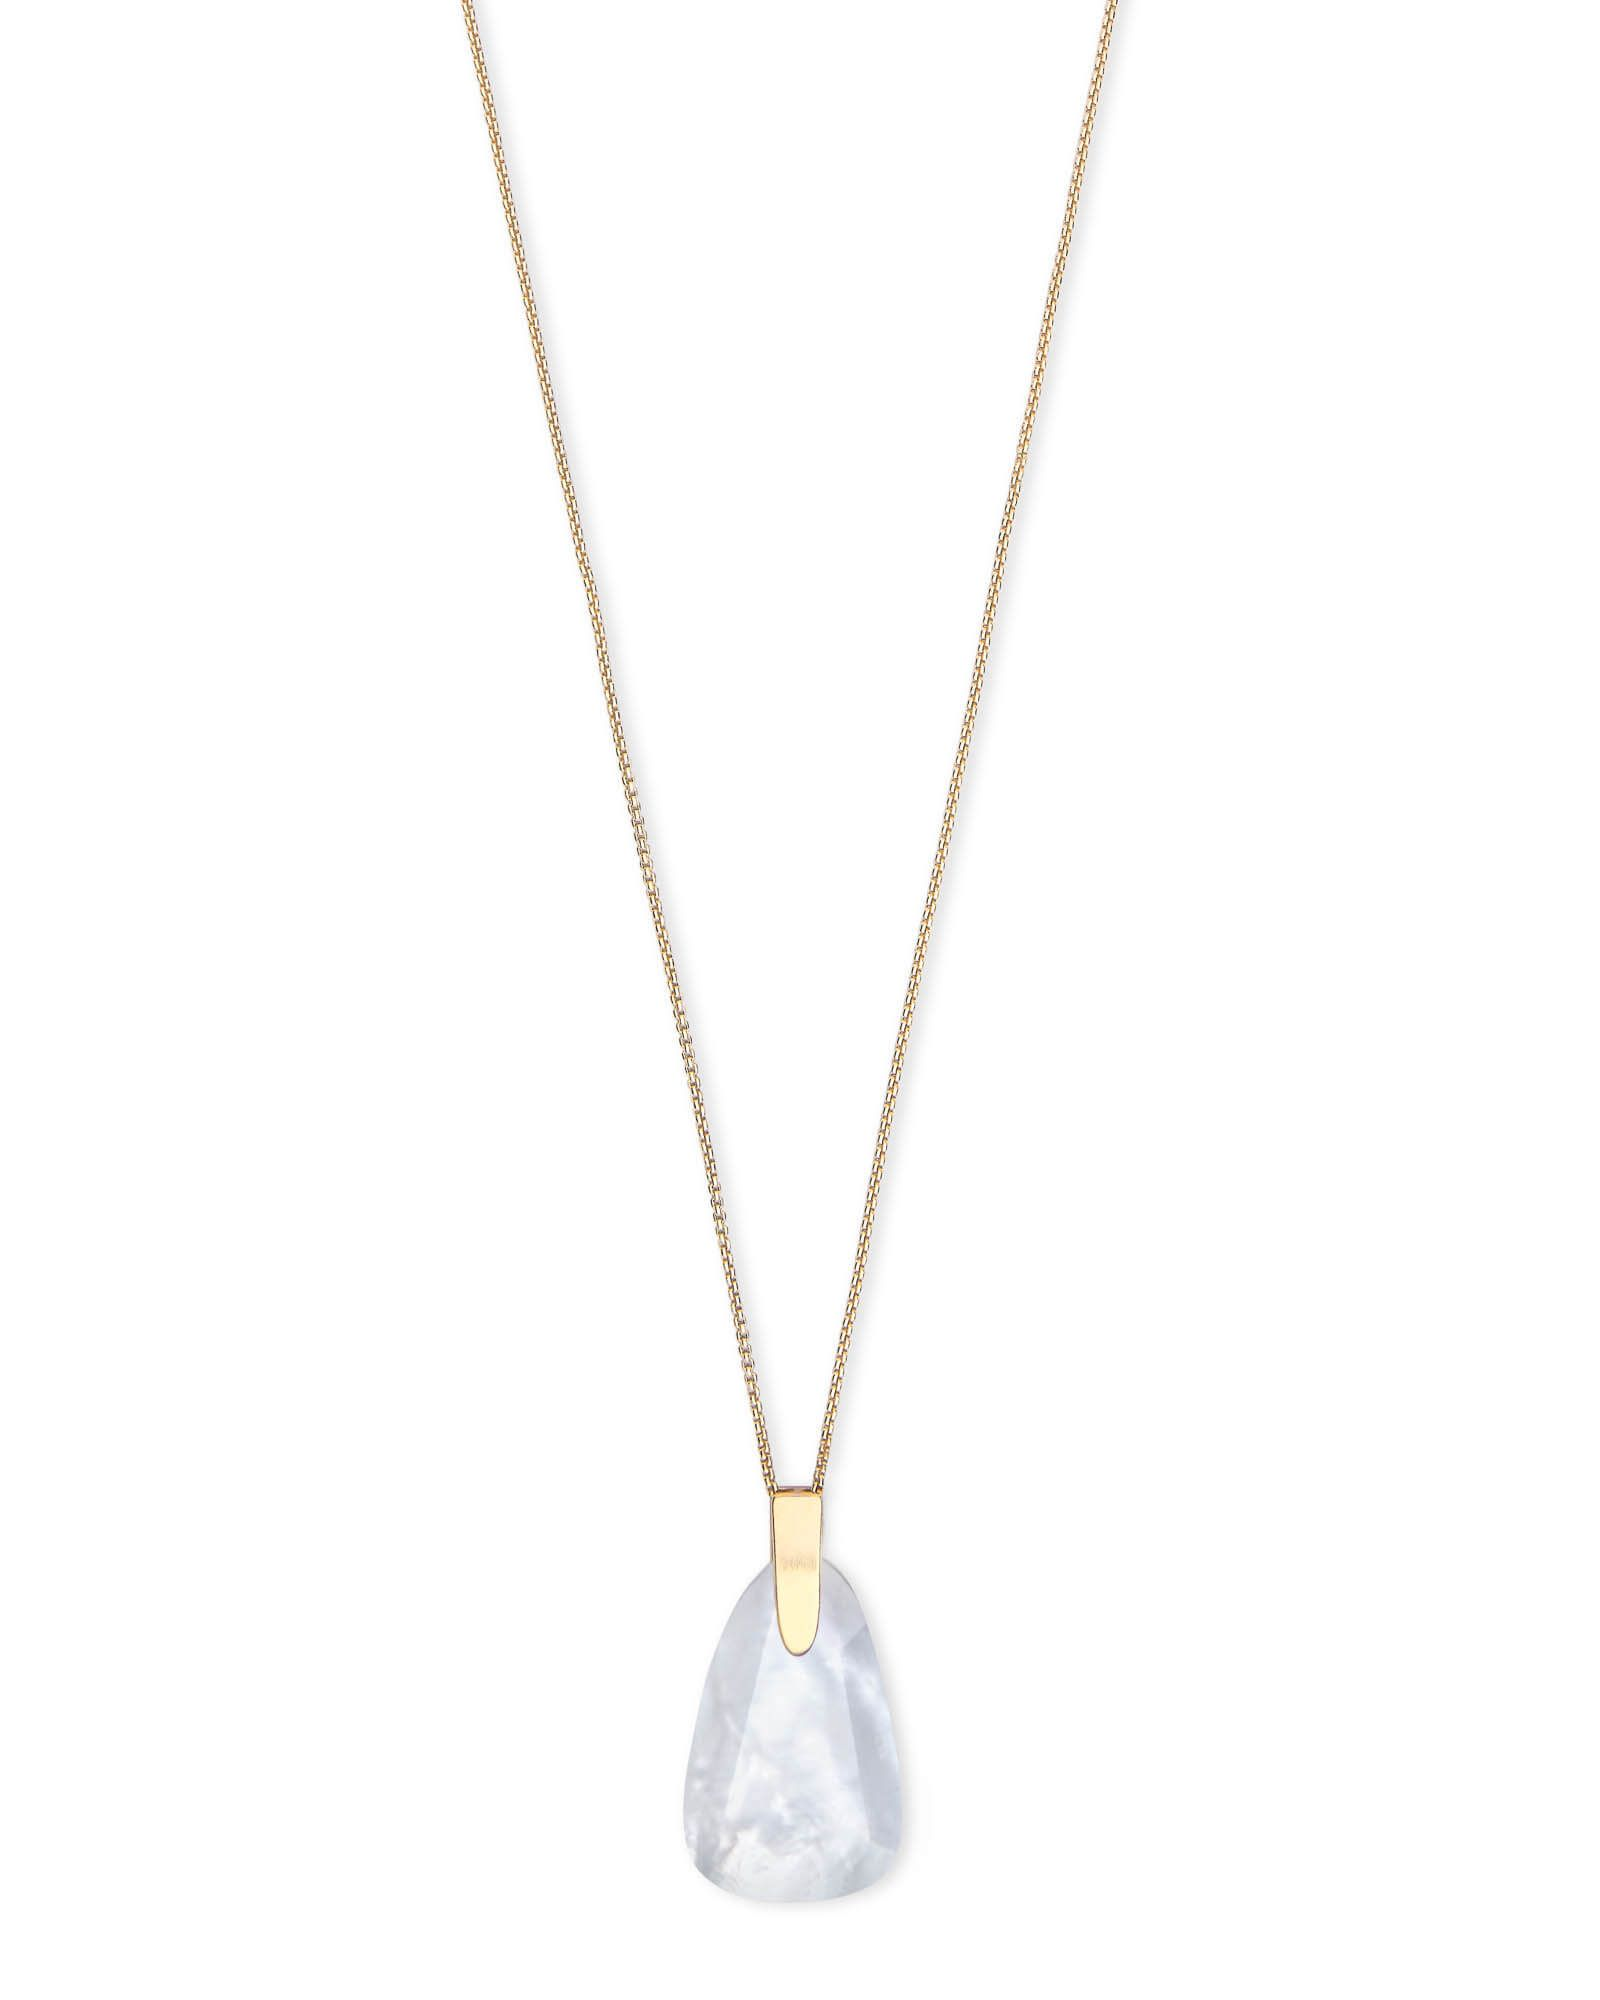 1ab35812c79e2 New at Kendra Scott | Maeve Gold Long Pendant Necklace in Ivory ...